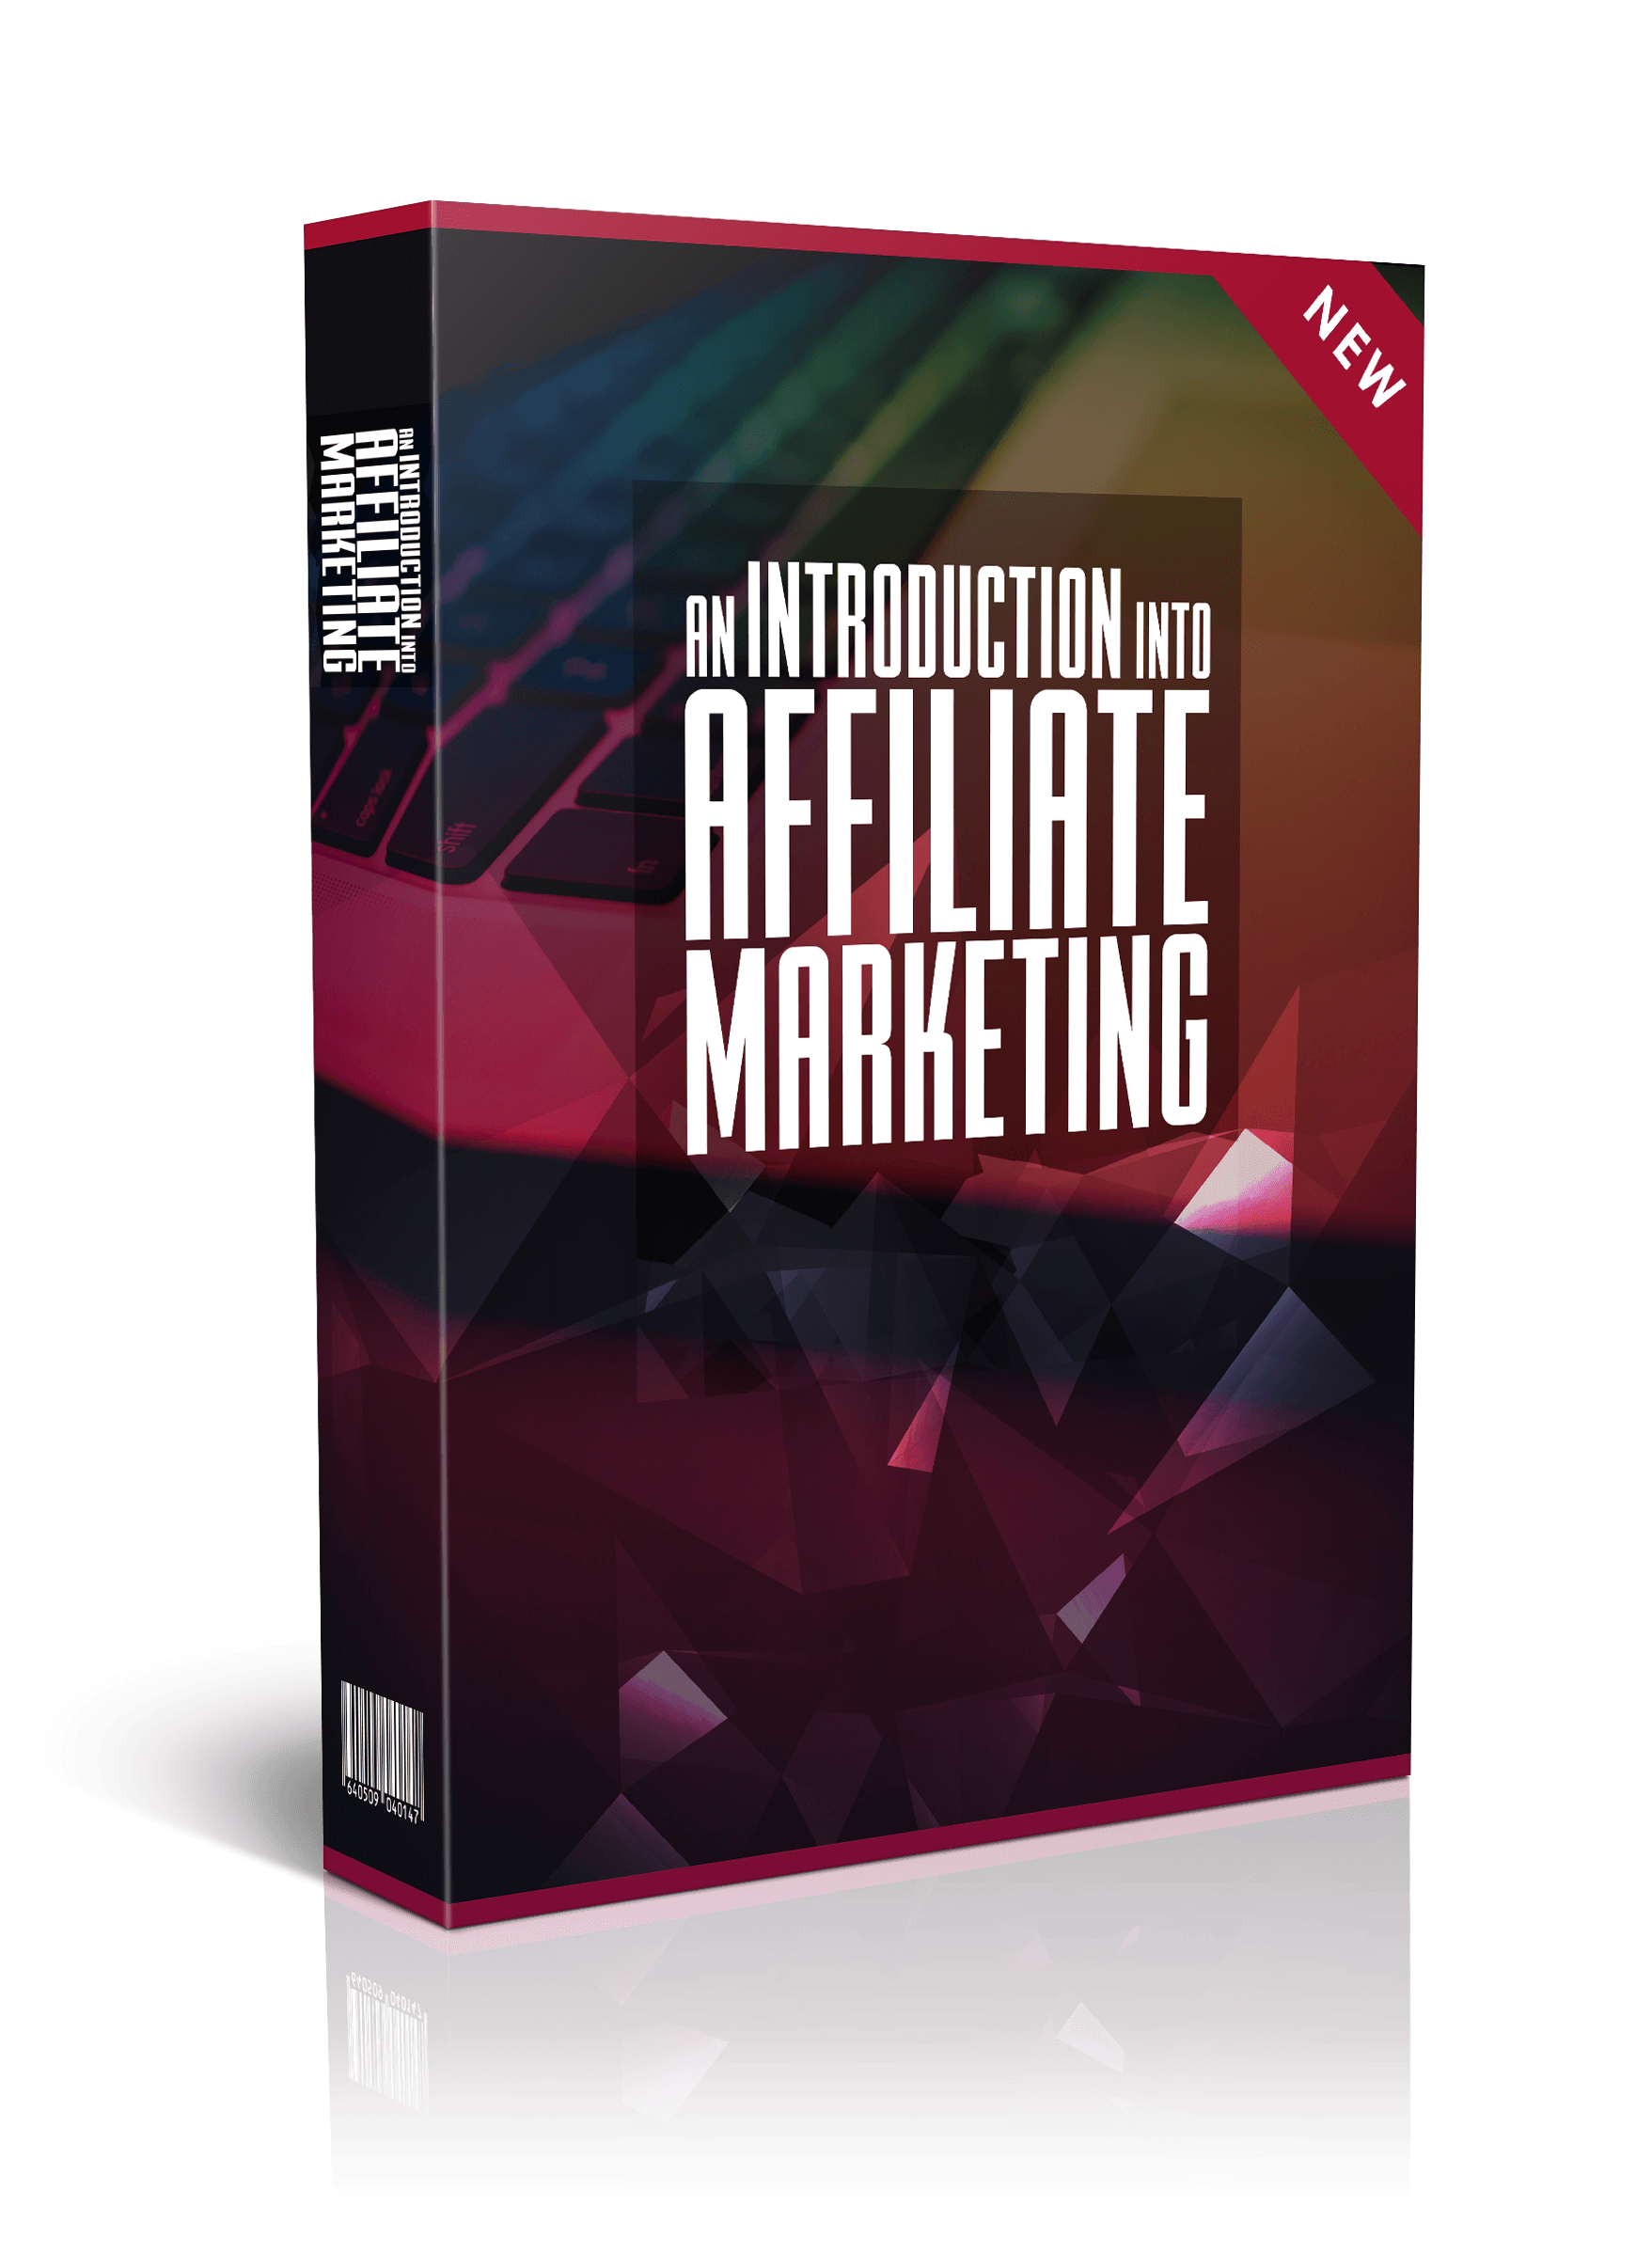 22. An-Introduction-Into-Affiliate-Marketing